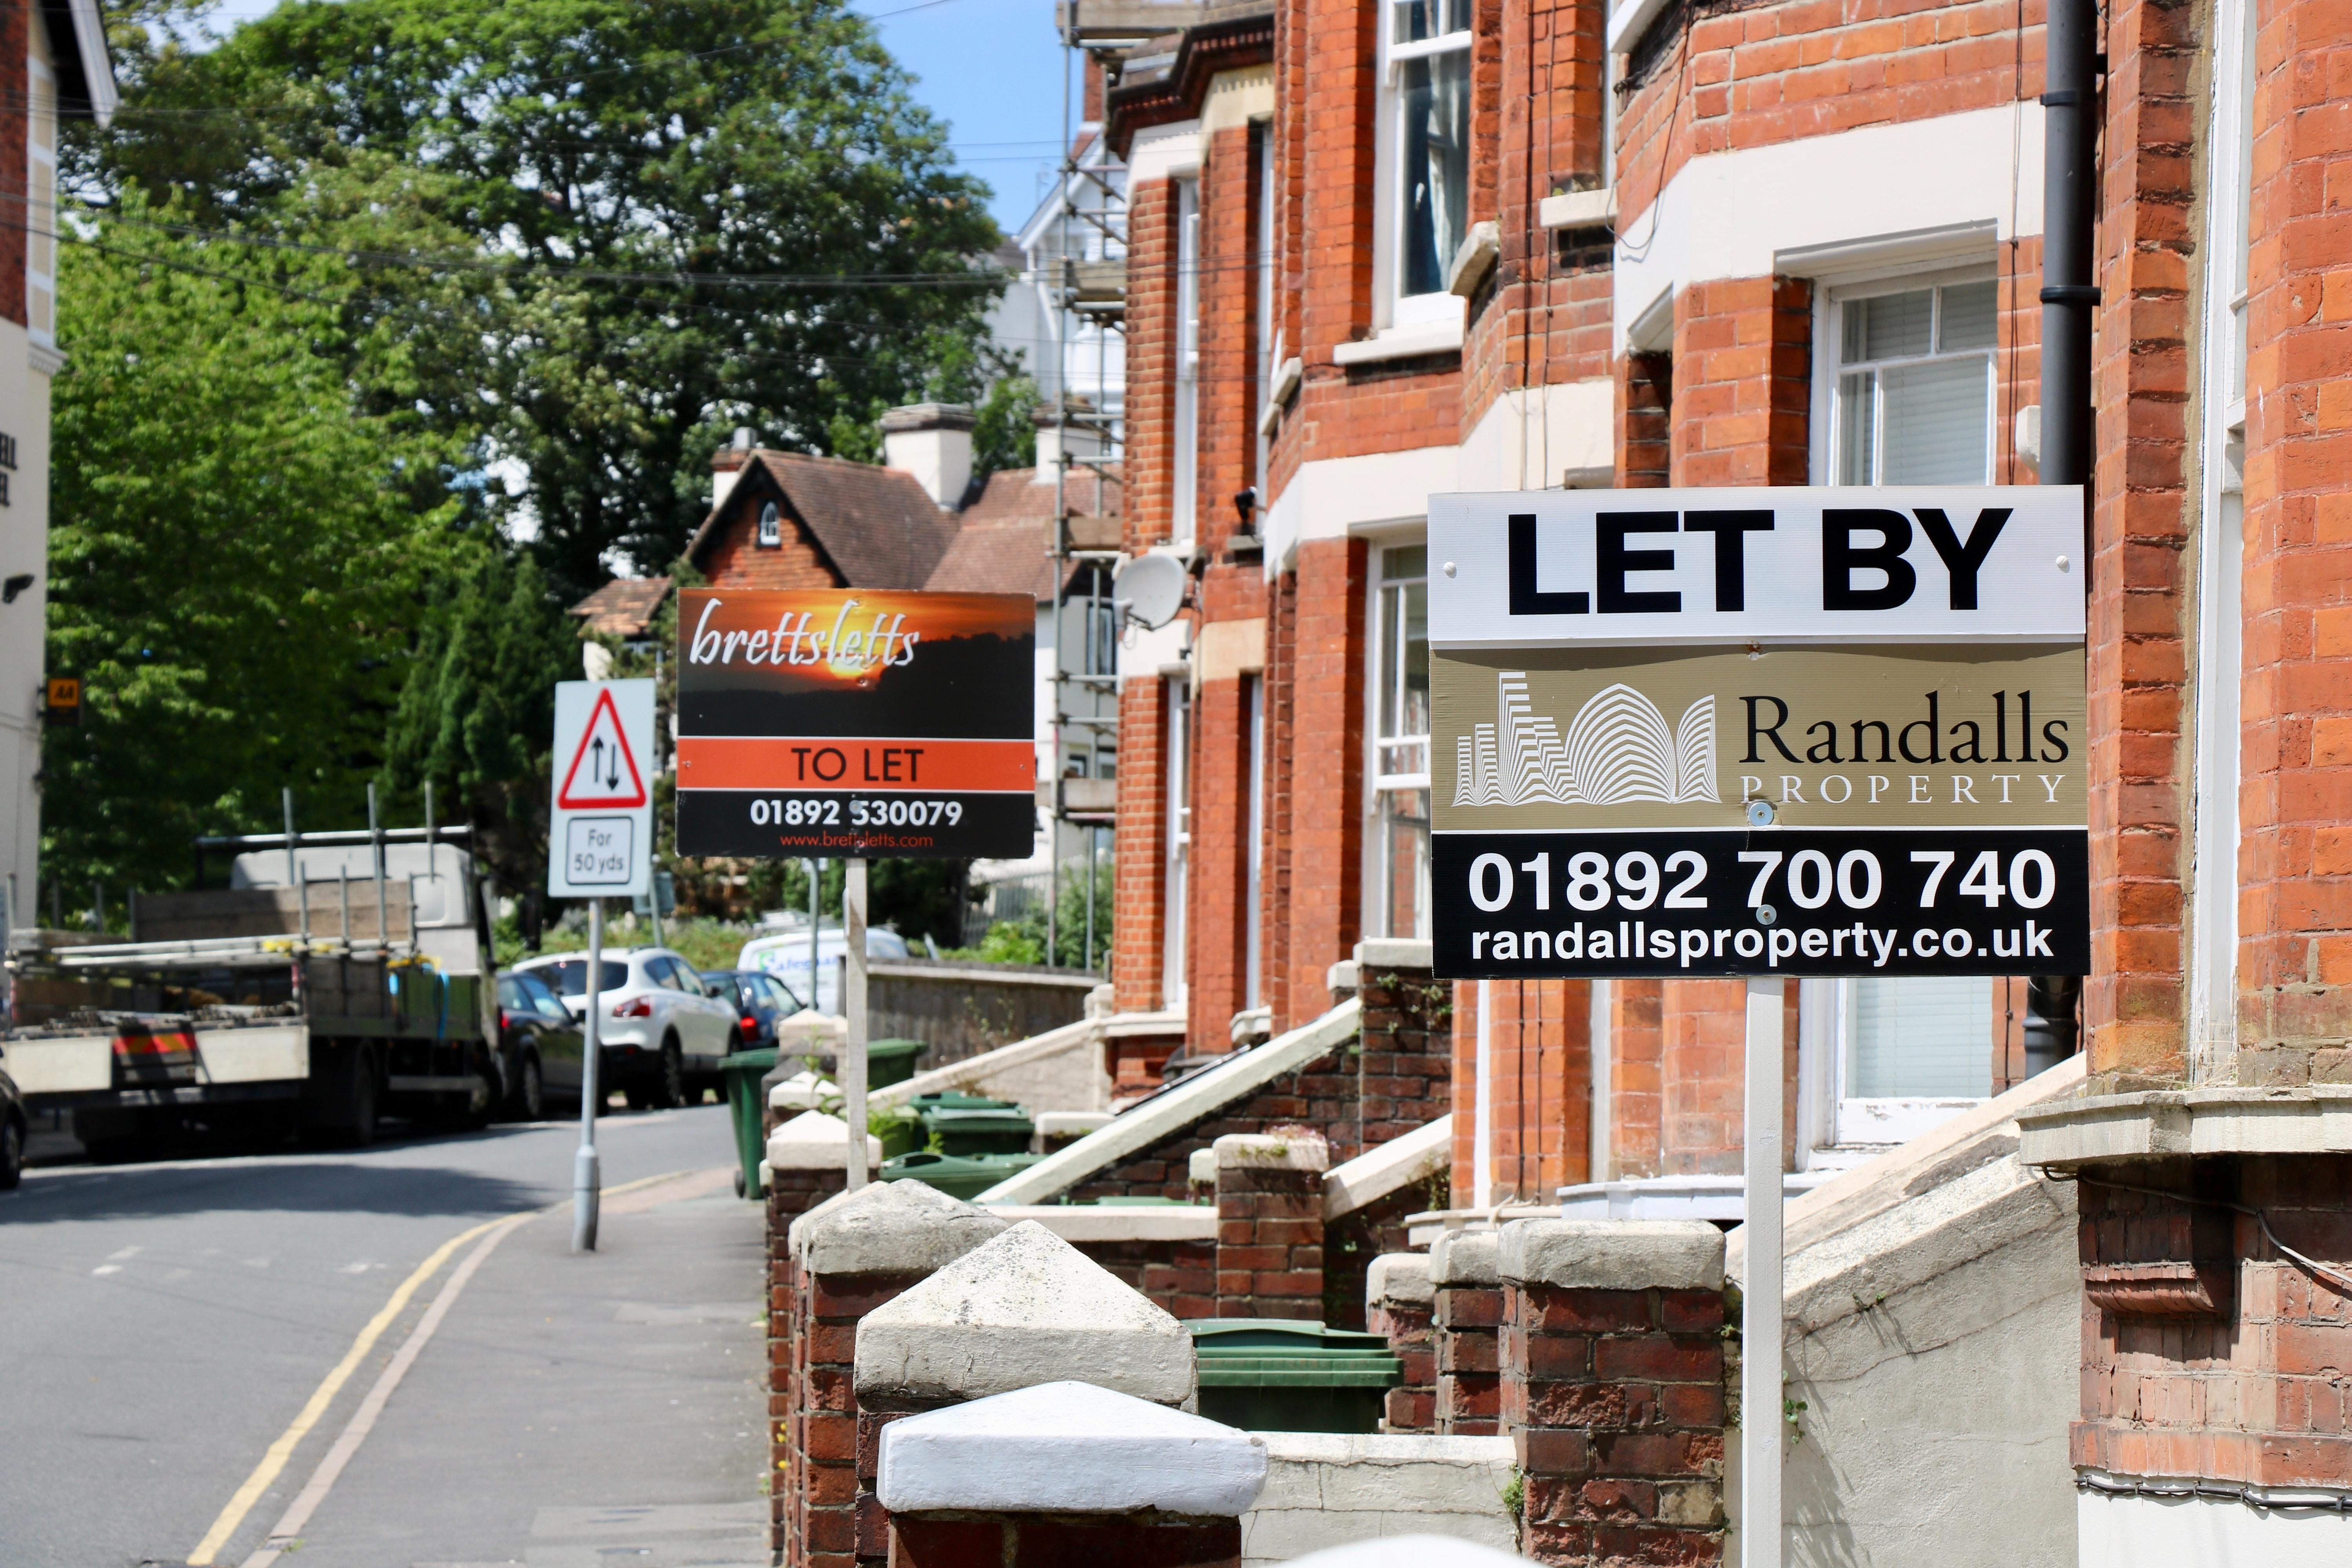 A estate agent's sign advertising that a property is for rent.